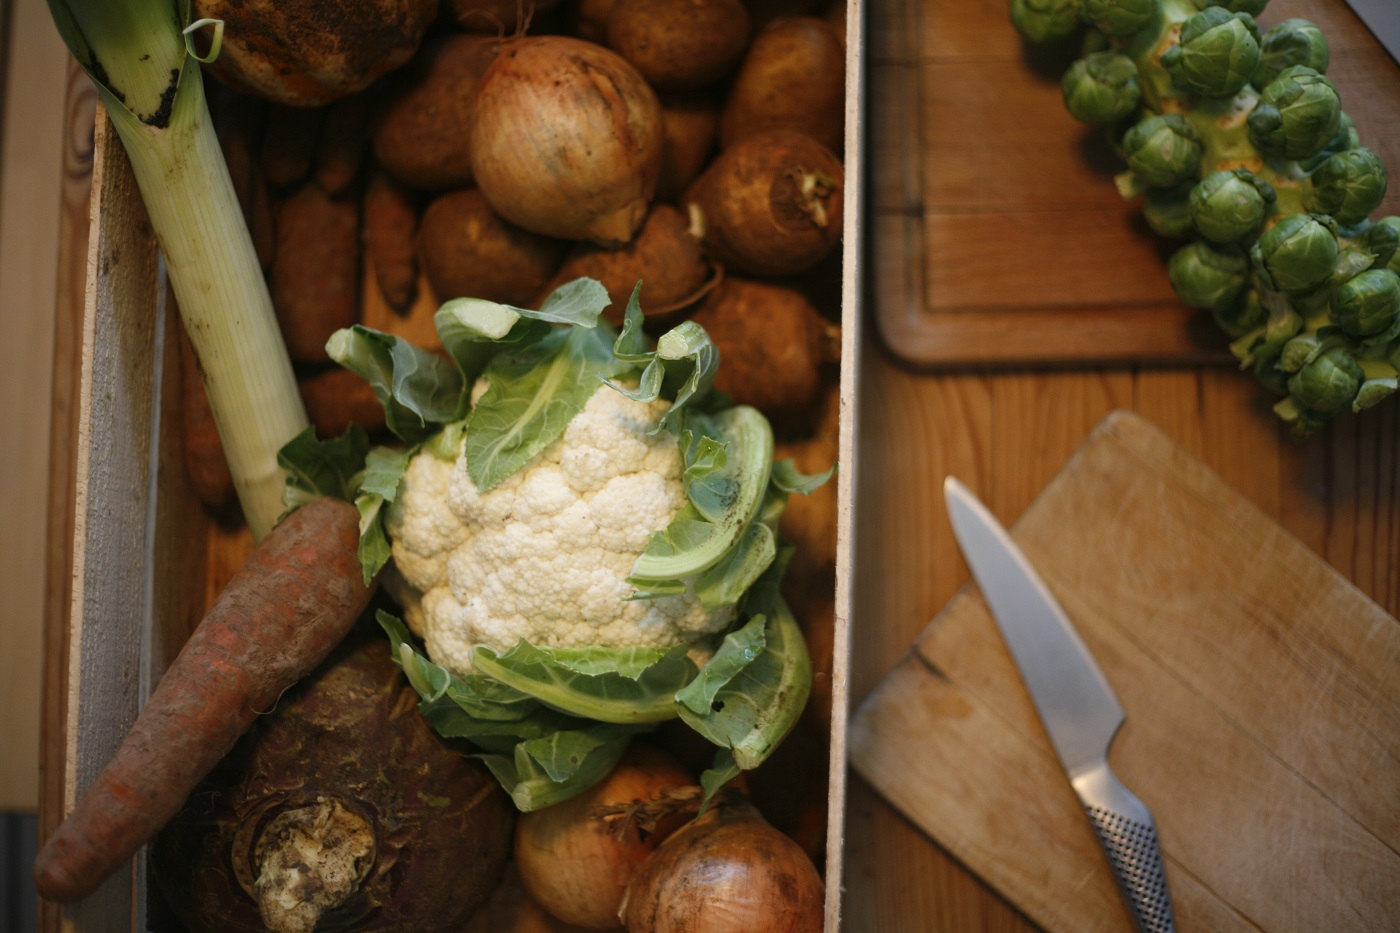 season winter veg box with brussels sprouts, cauliflower & carrots